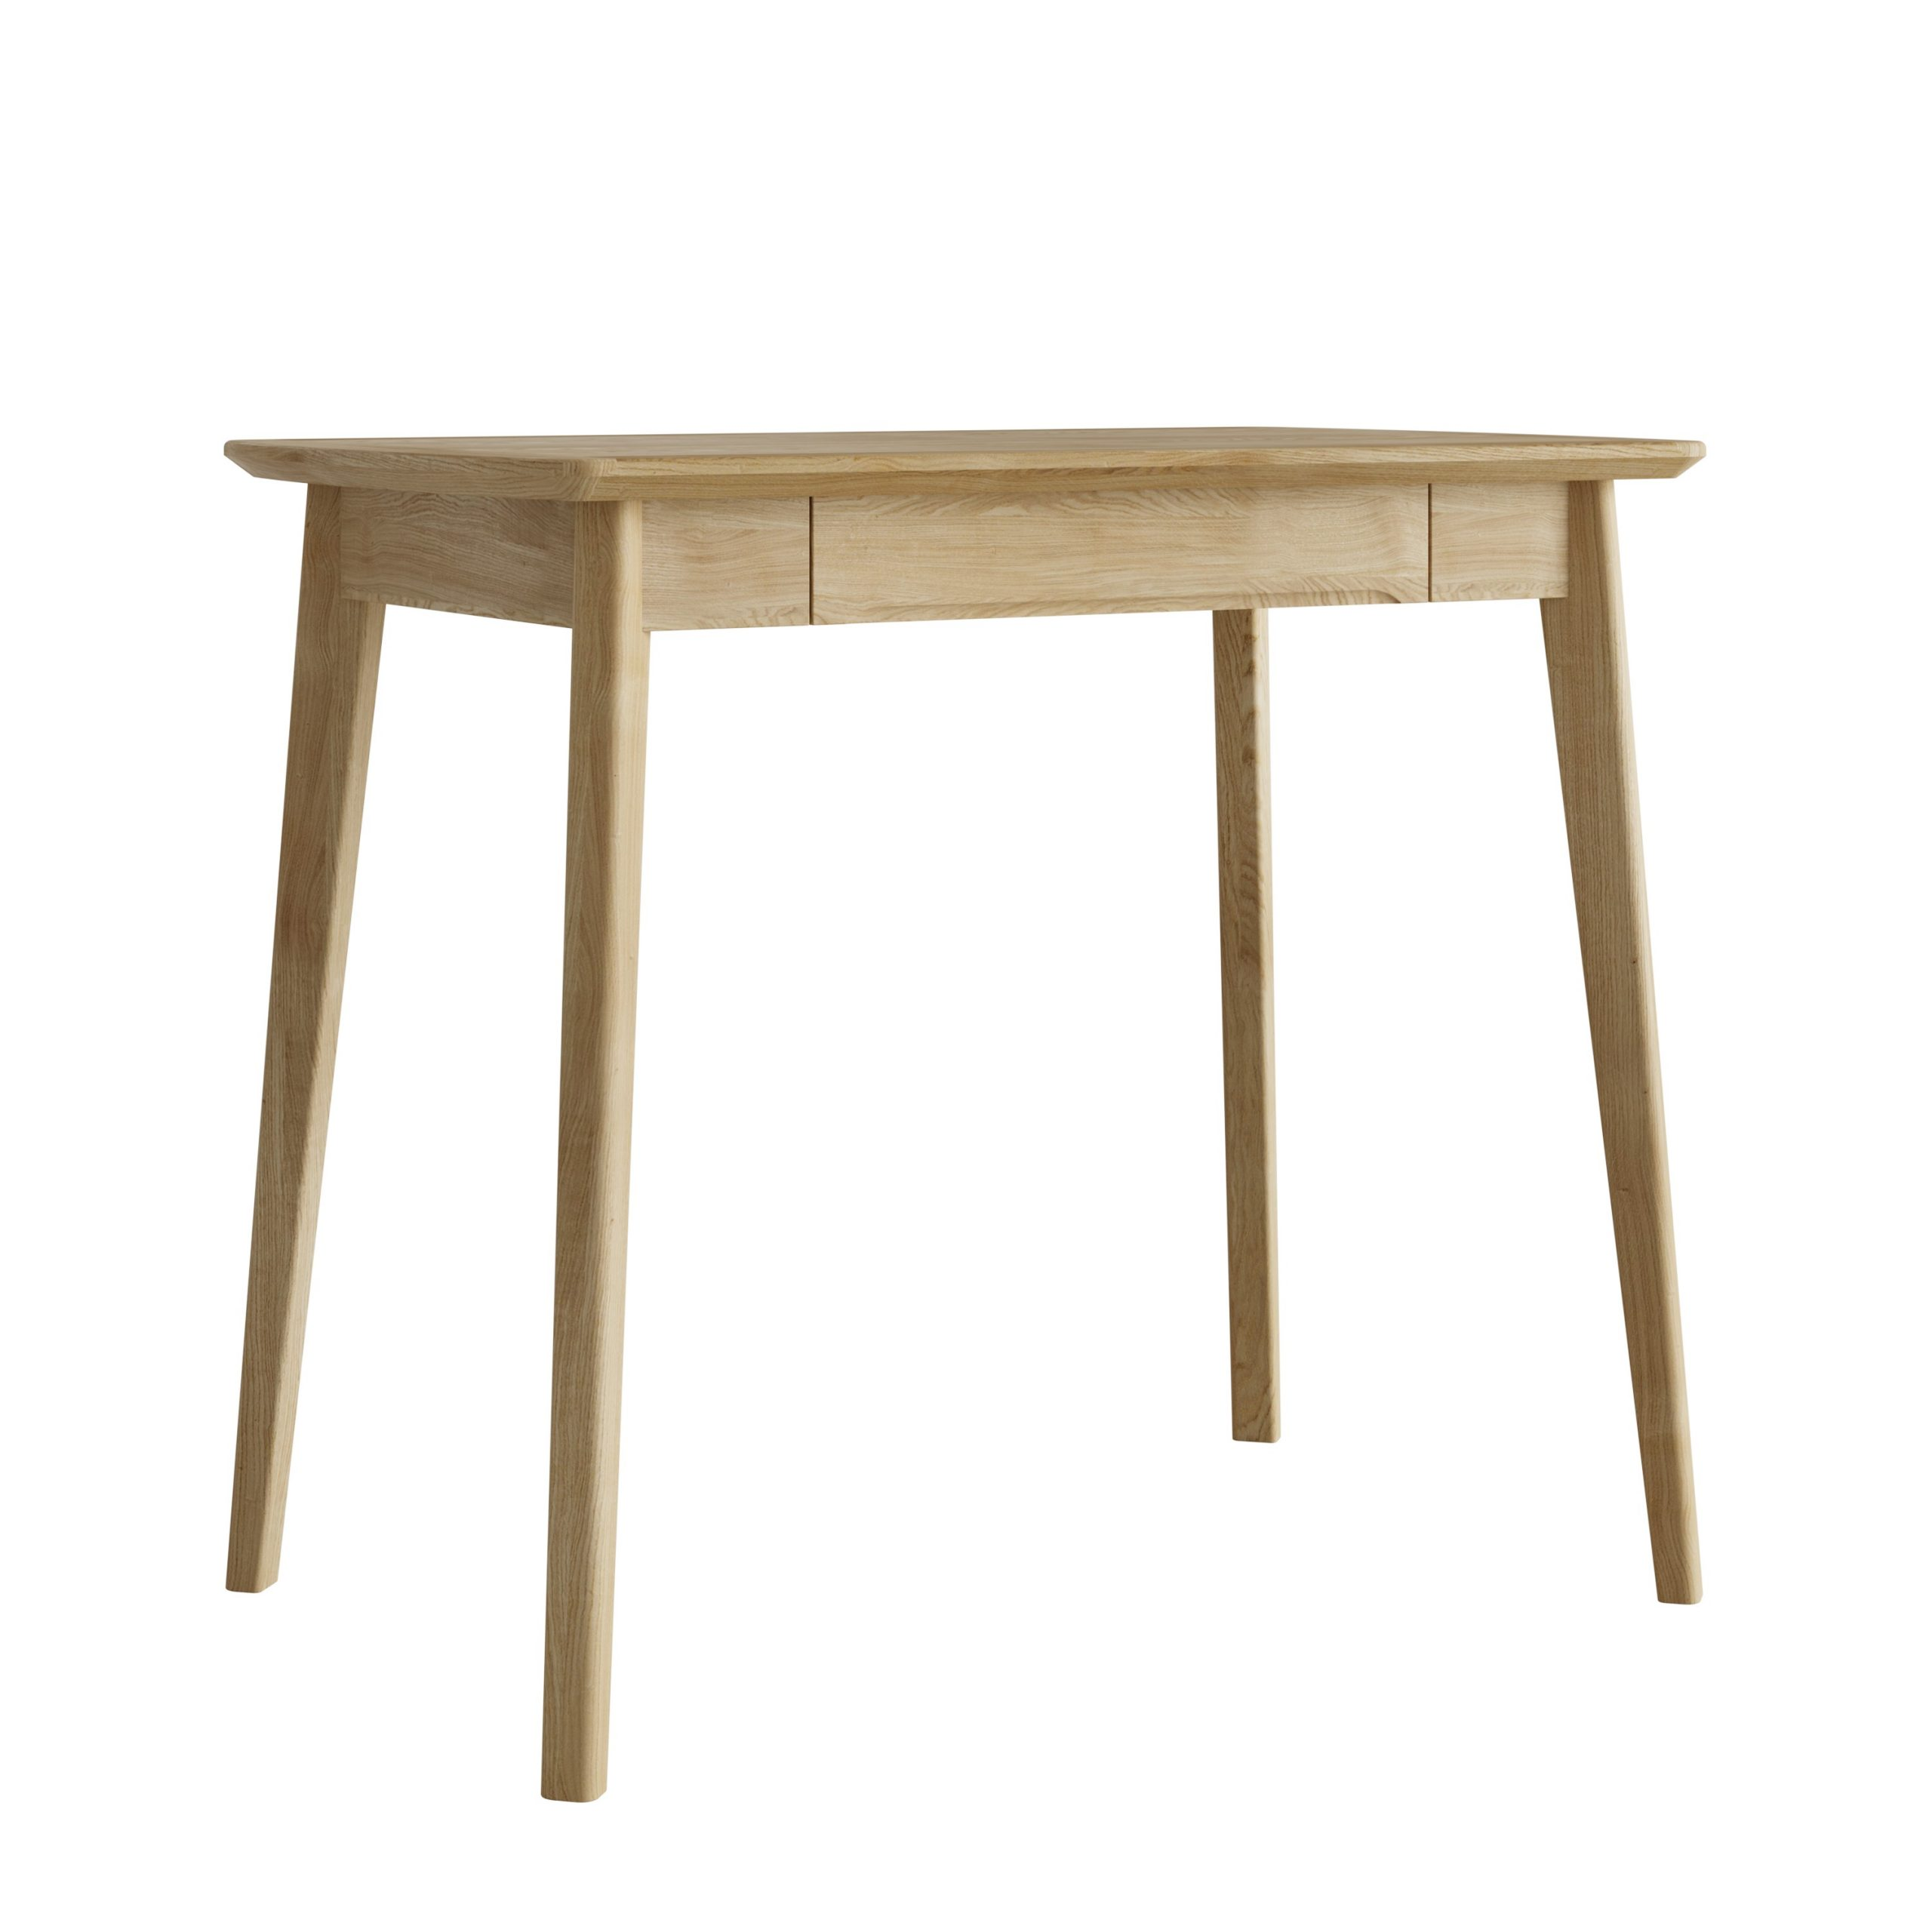 Oak Extending Dining Table - Our Price - Only £499